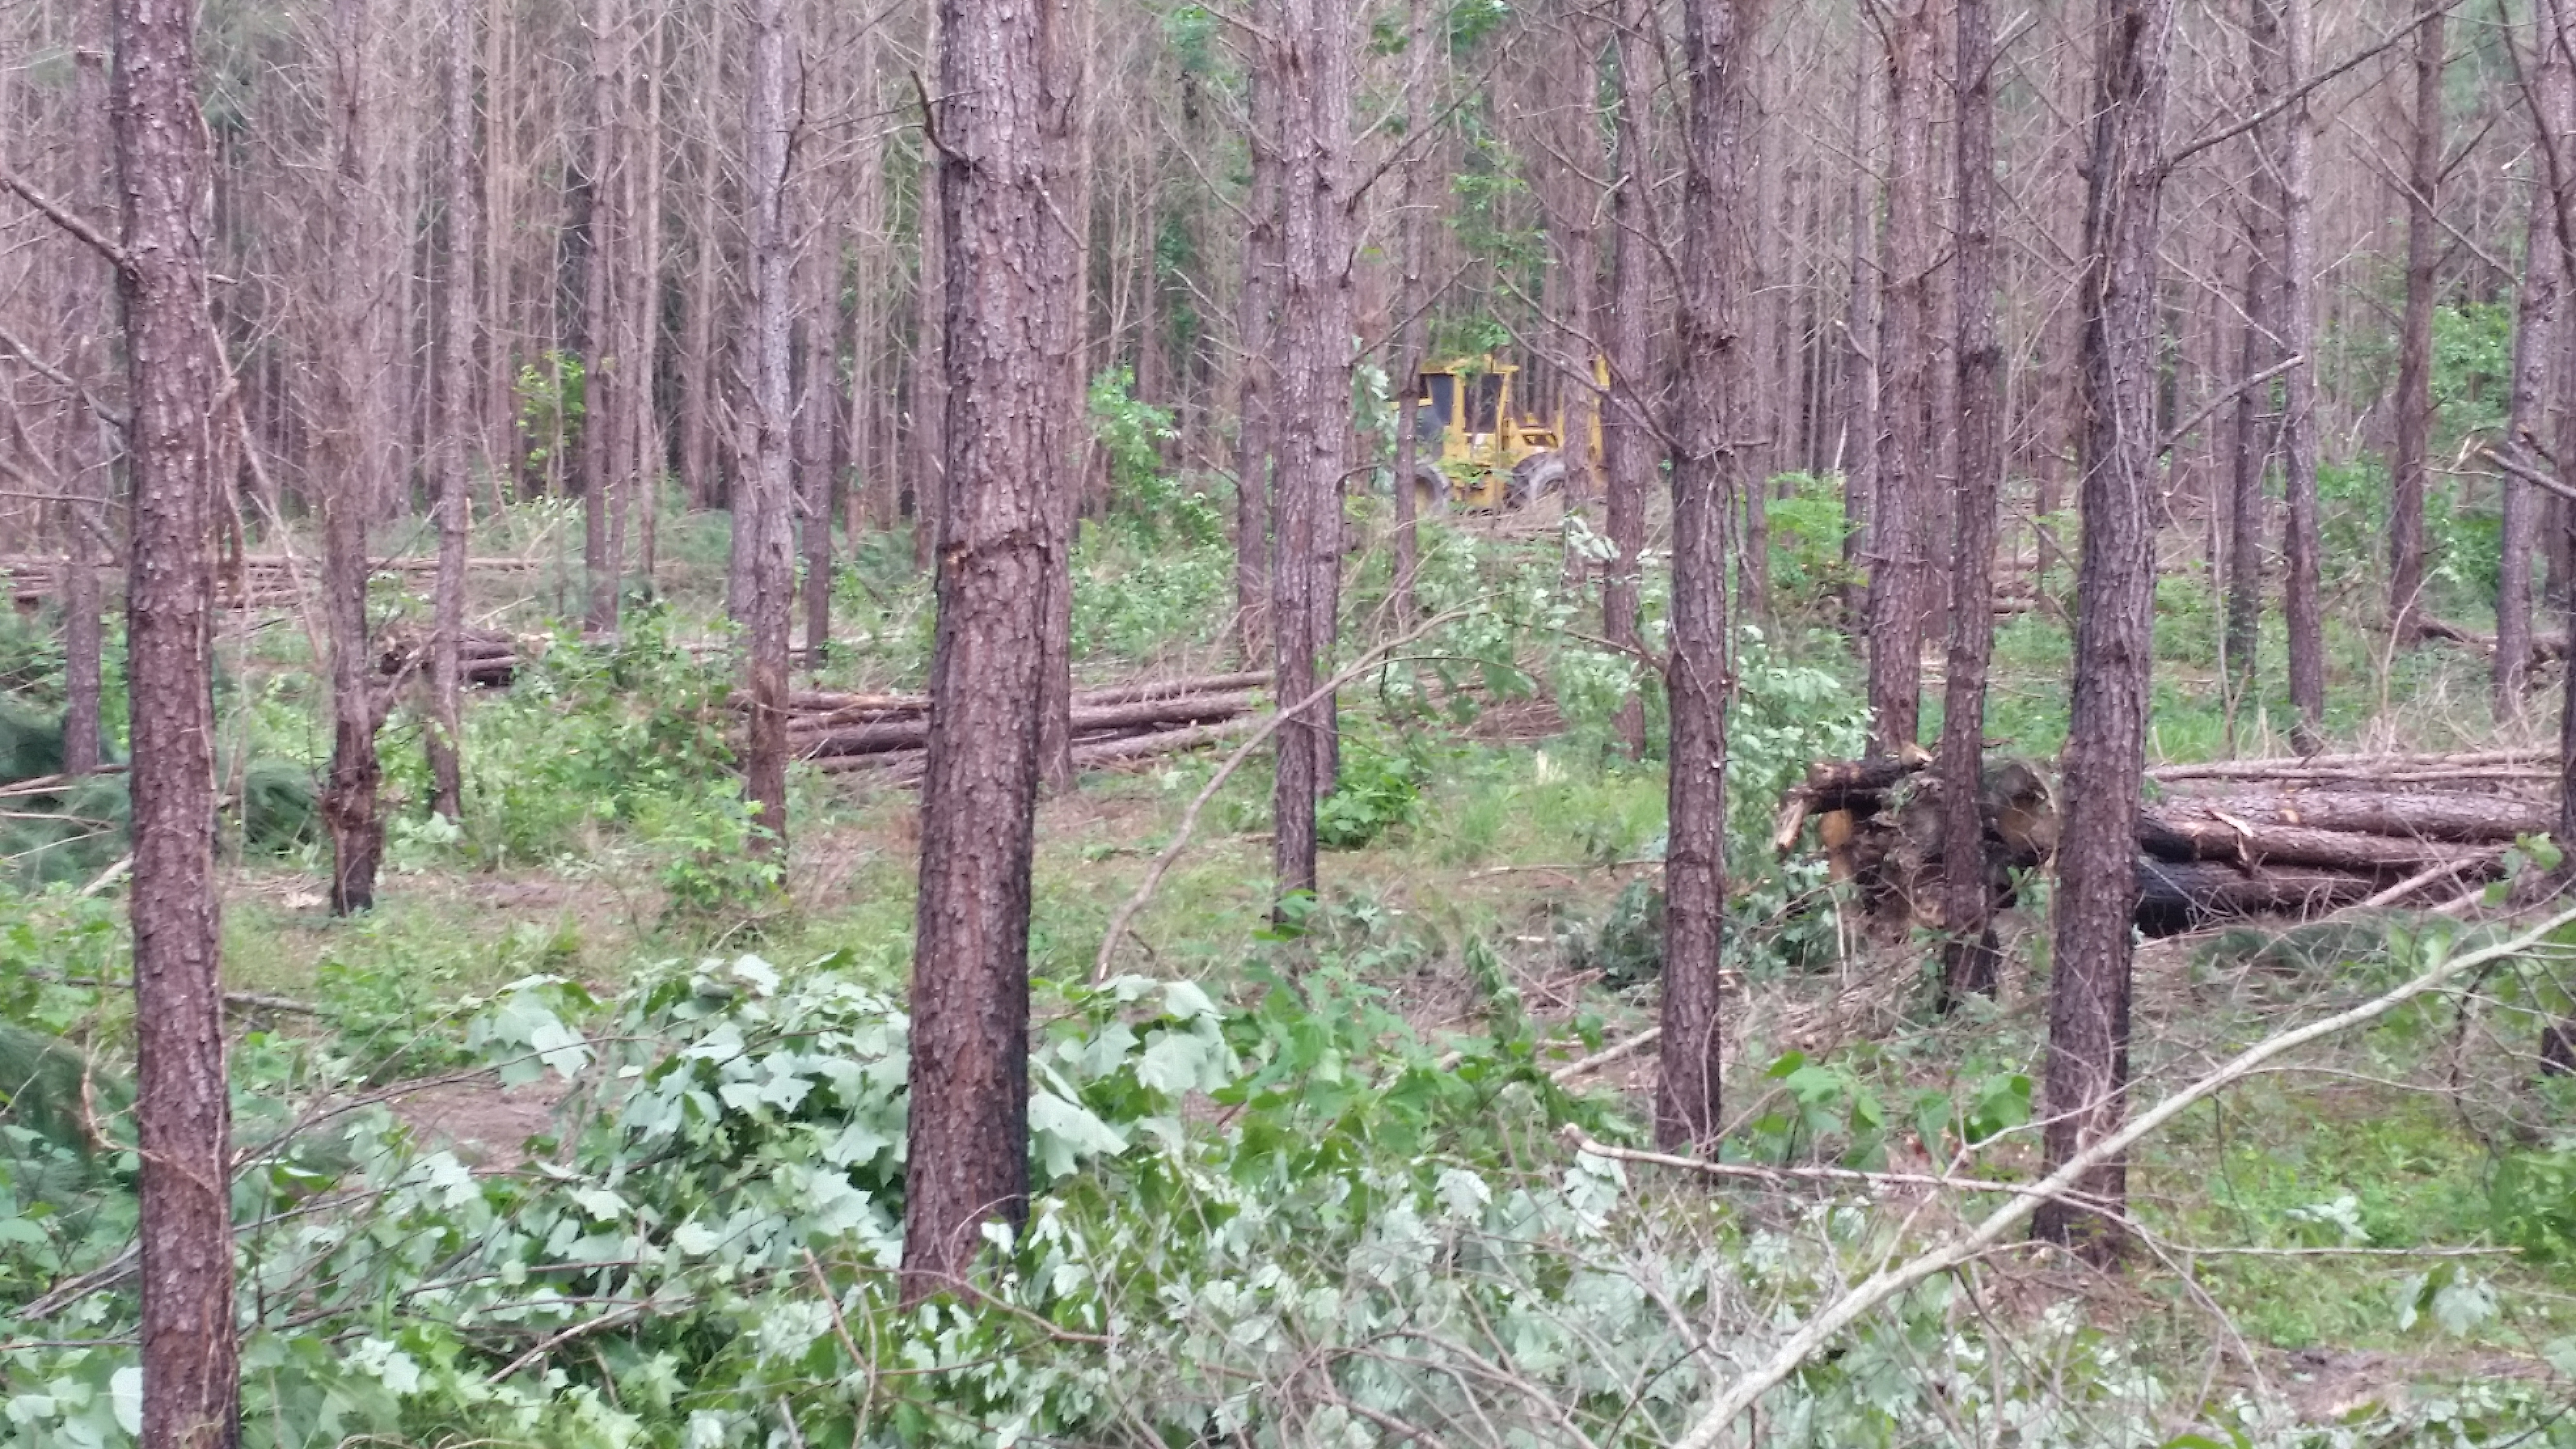 Rock Springs Forestry sells Thinnings for their clients.